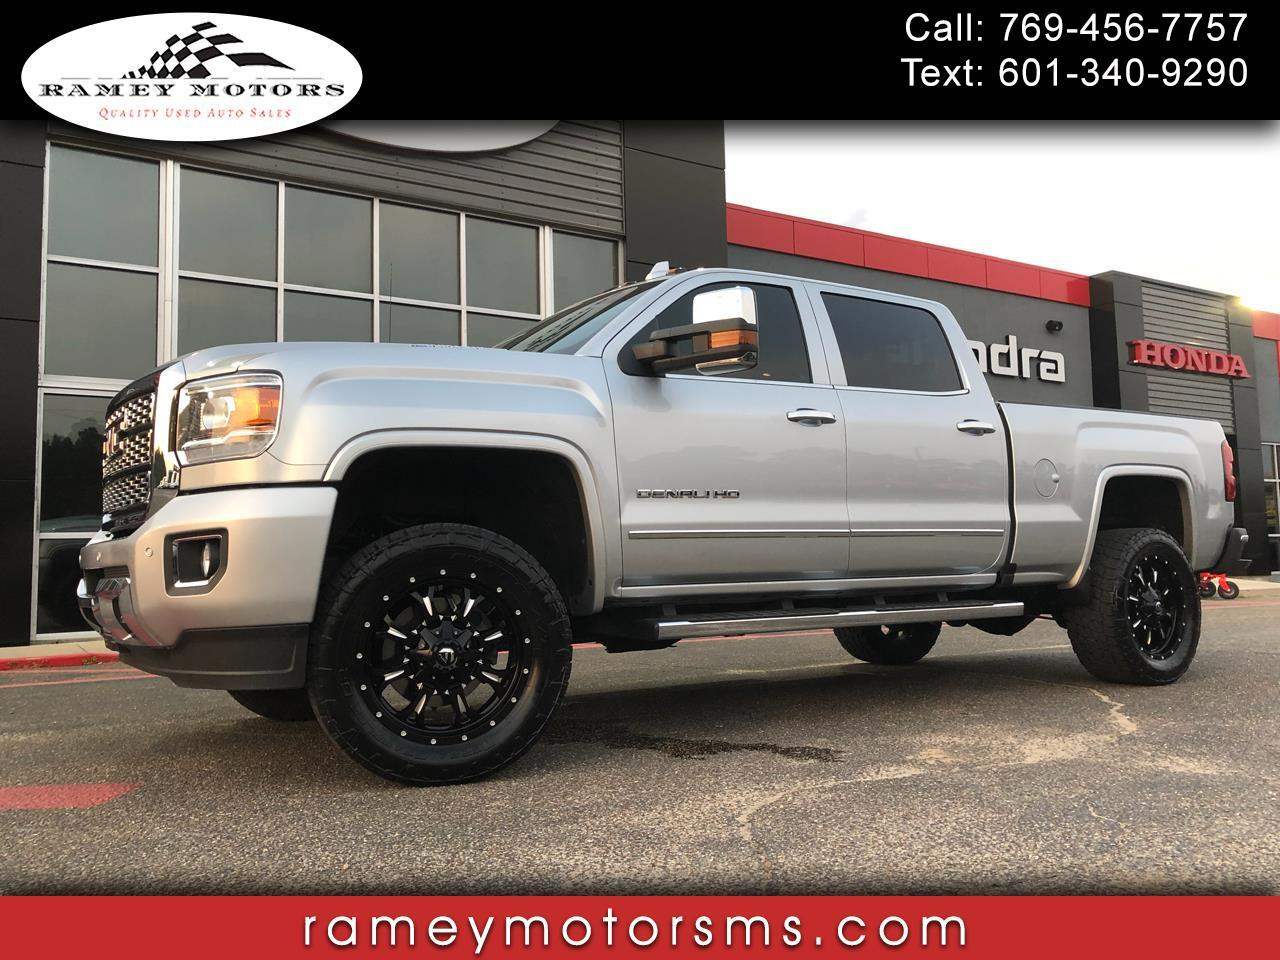 2018 GMC Sierra 2500HD 4WD CREWCAB DENALI CUSTOM LEVELED